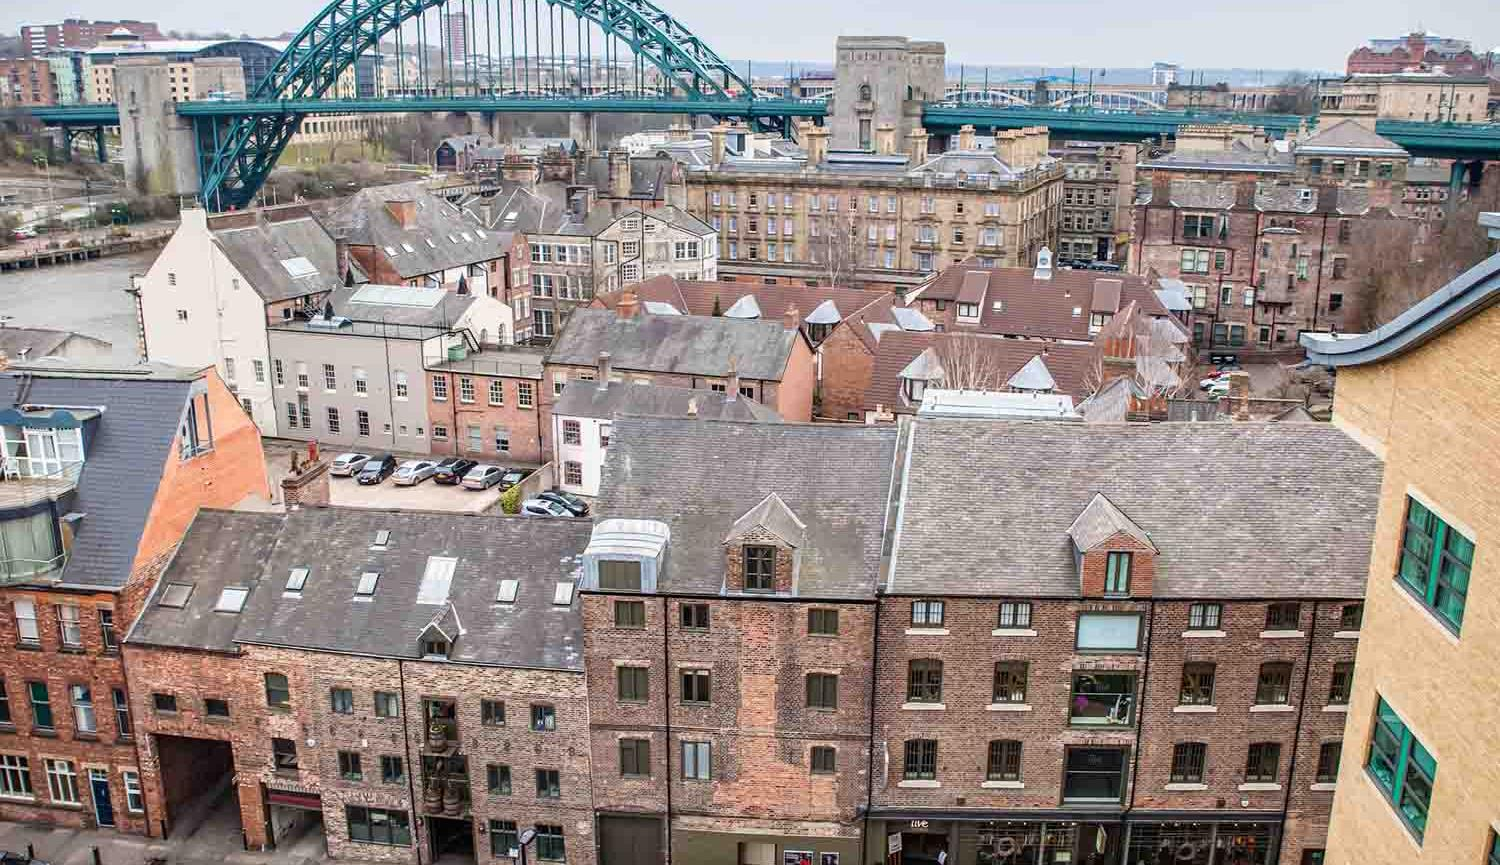 Aerial photo of Live Theatre buildings with Tyne Bridge in background